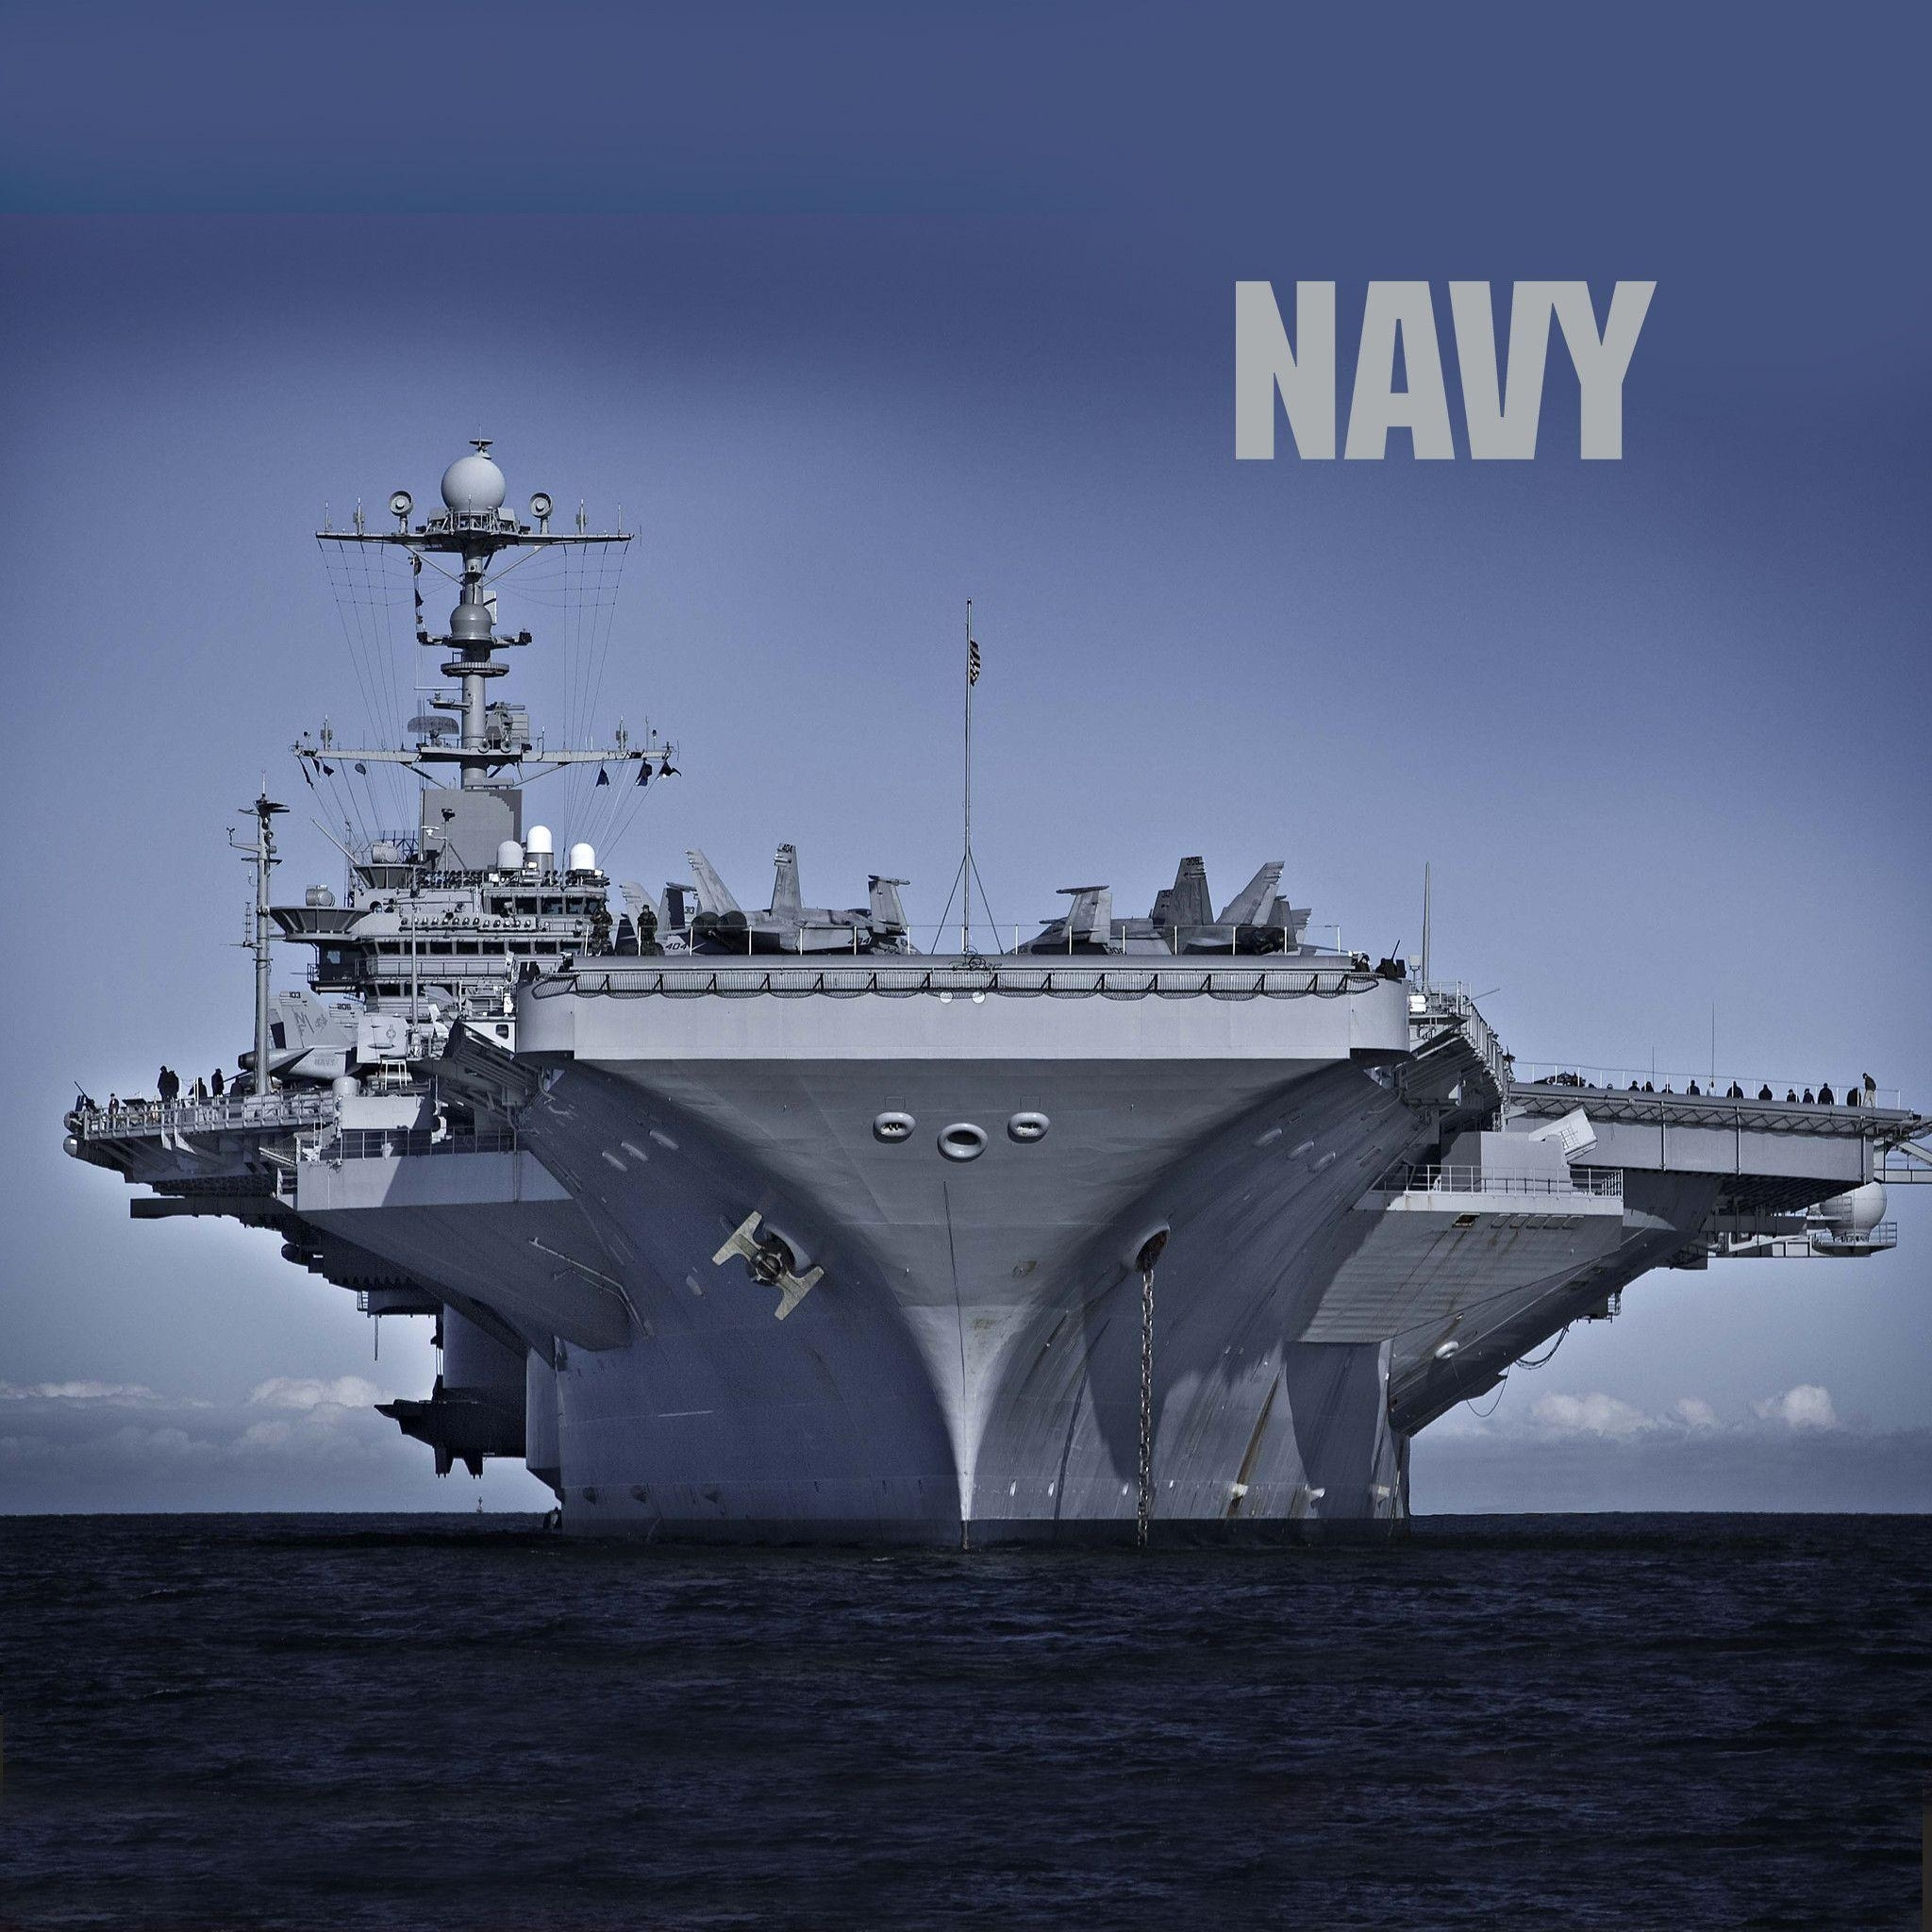 us navy wallpapers - wallpaper cave